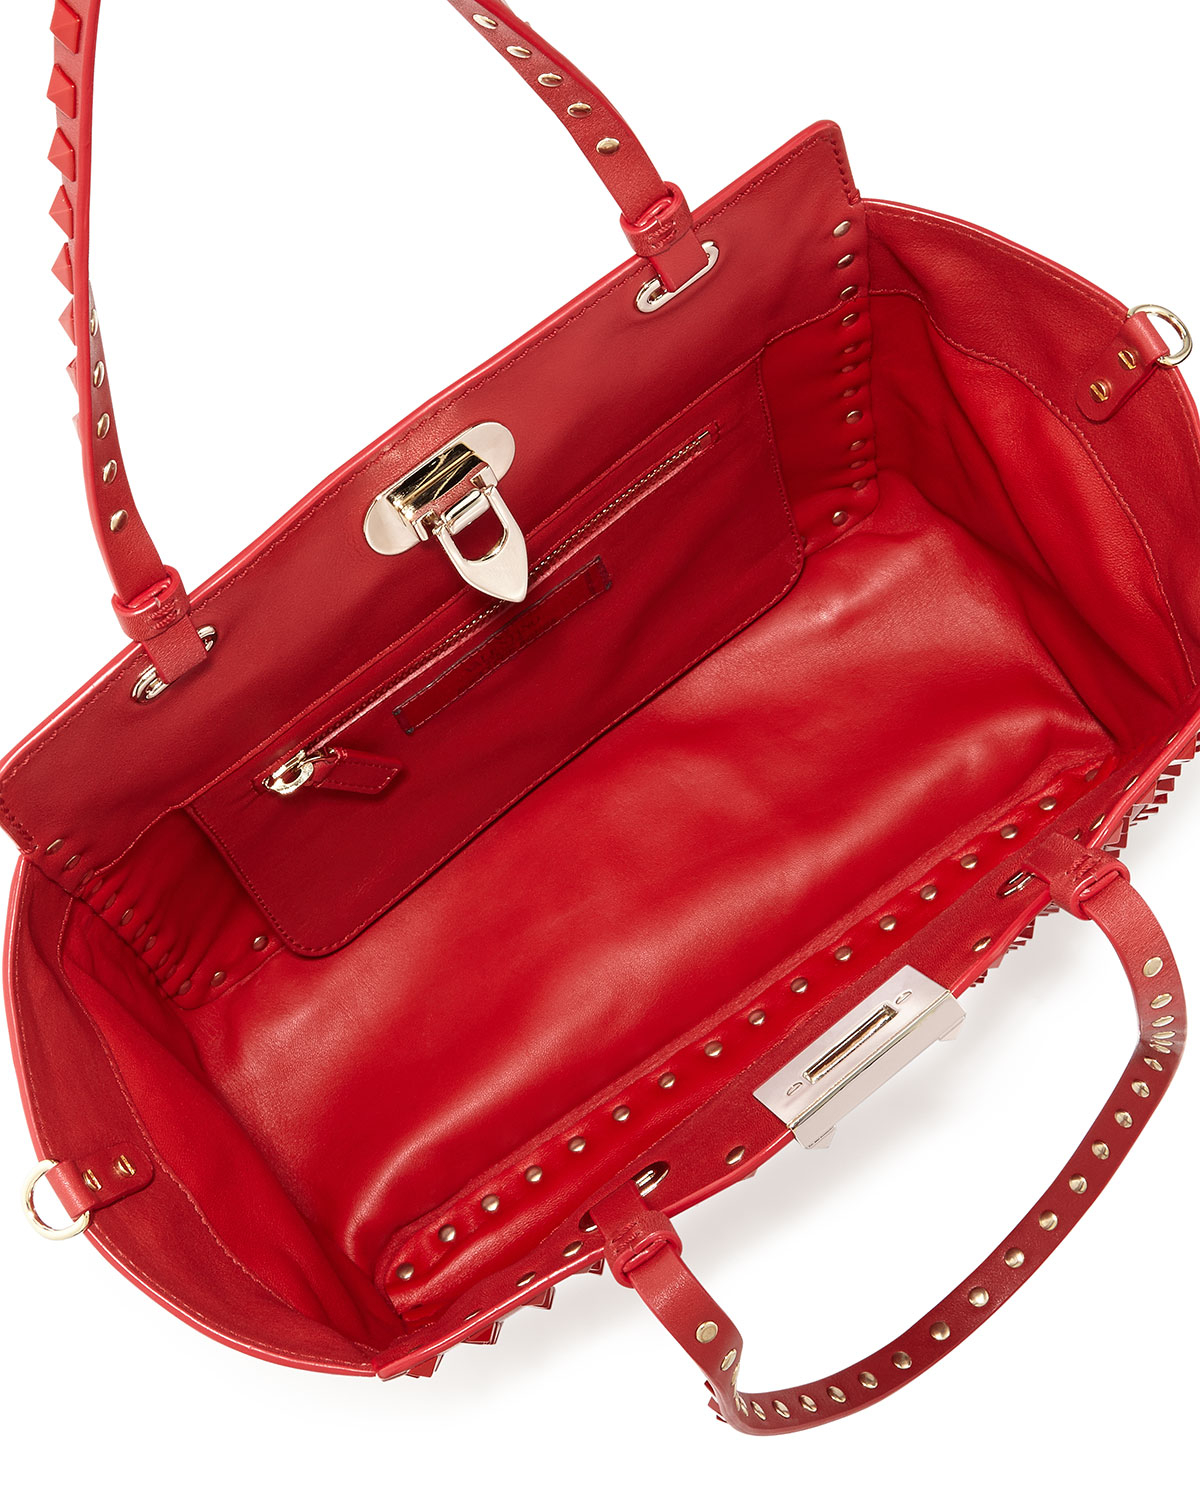 Valentino Rockstud Mini Leather Studded Tote Bag Red in Red | Lyst